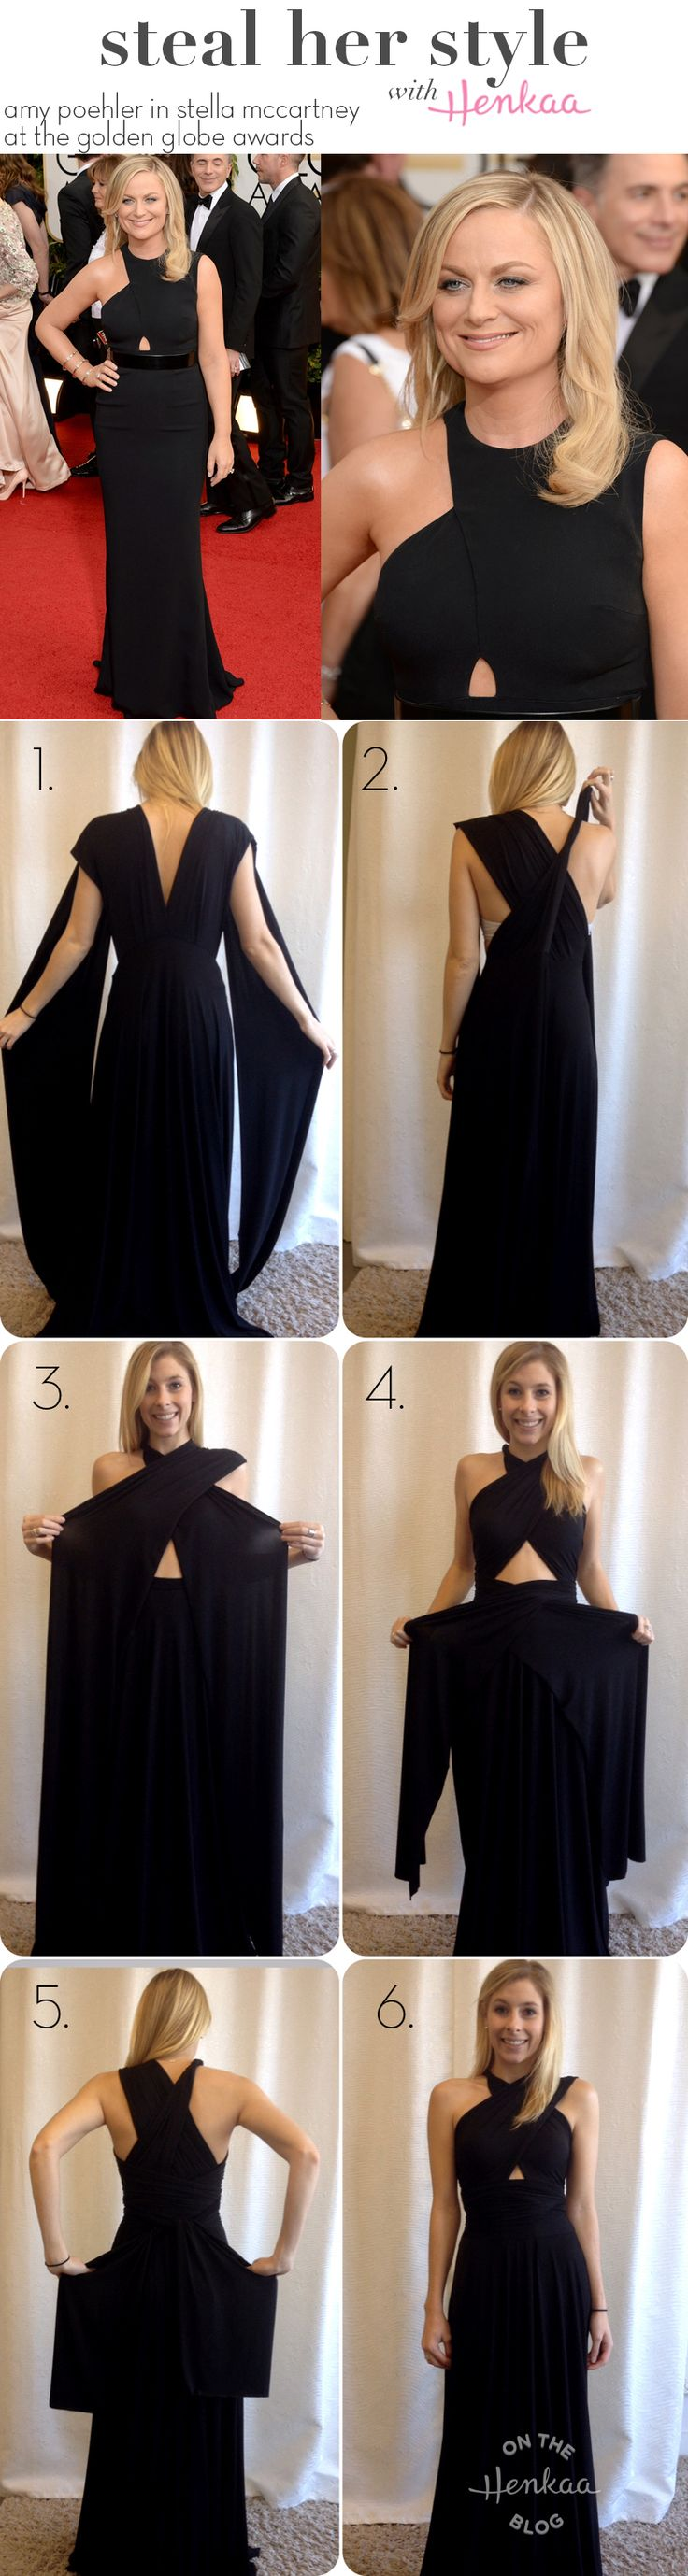 Long dress red carpet 1 step